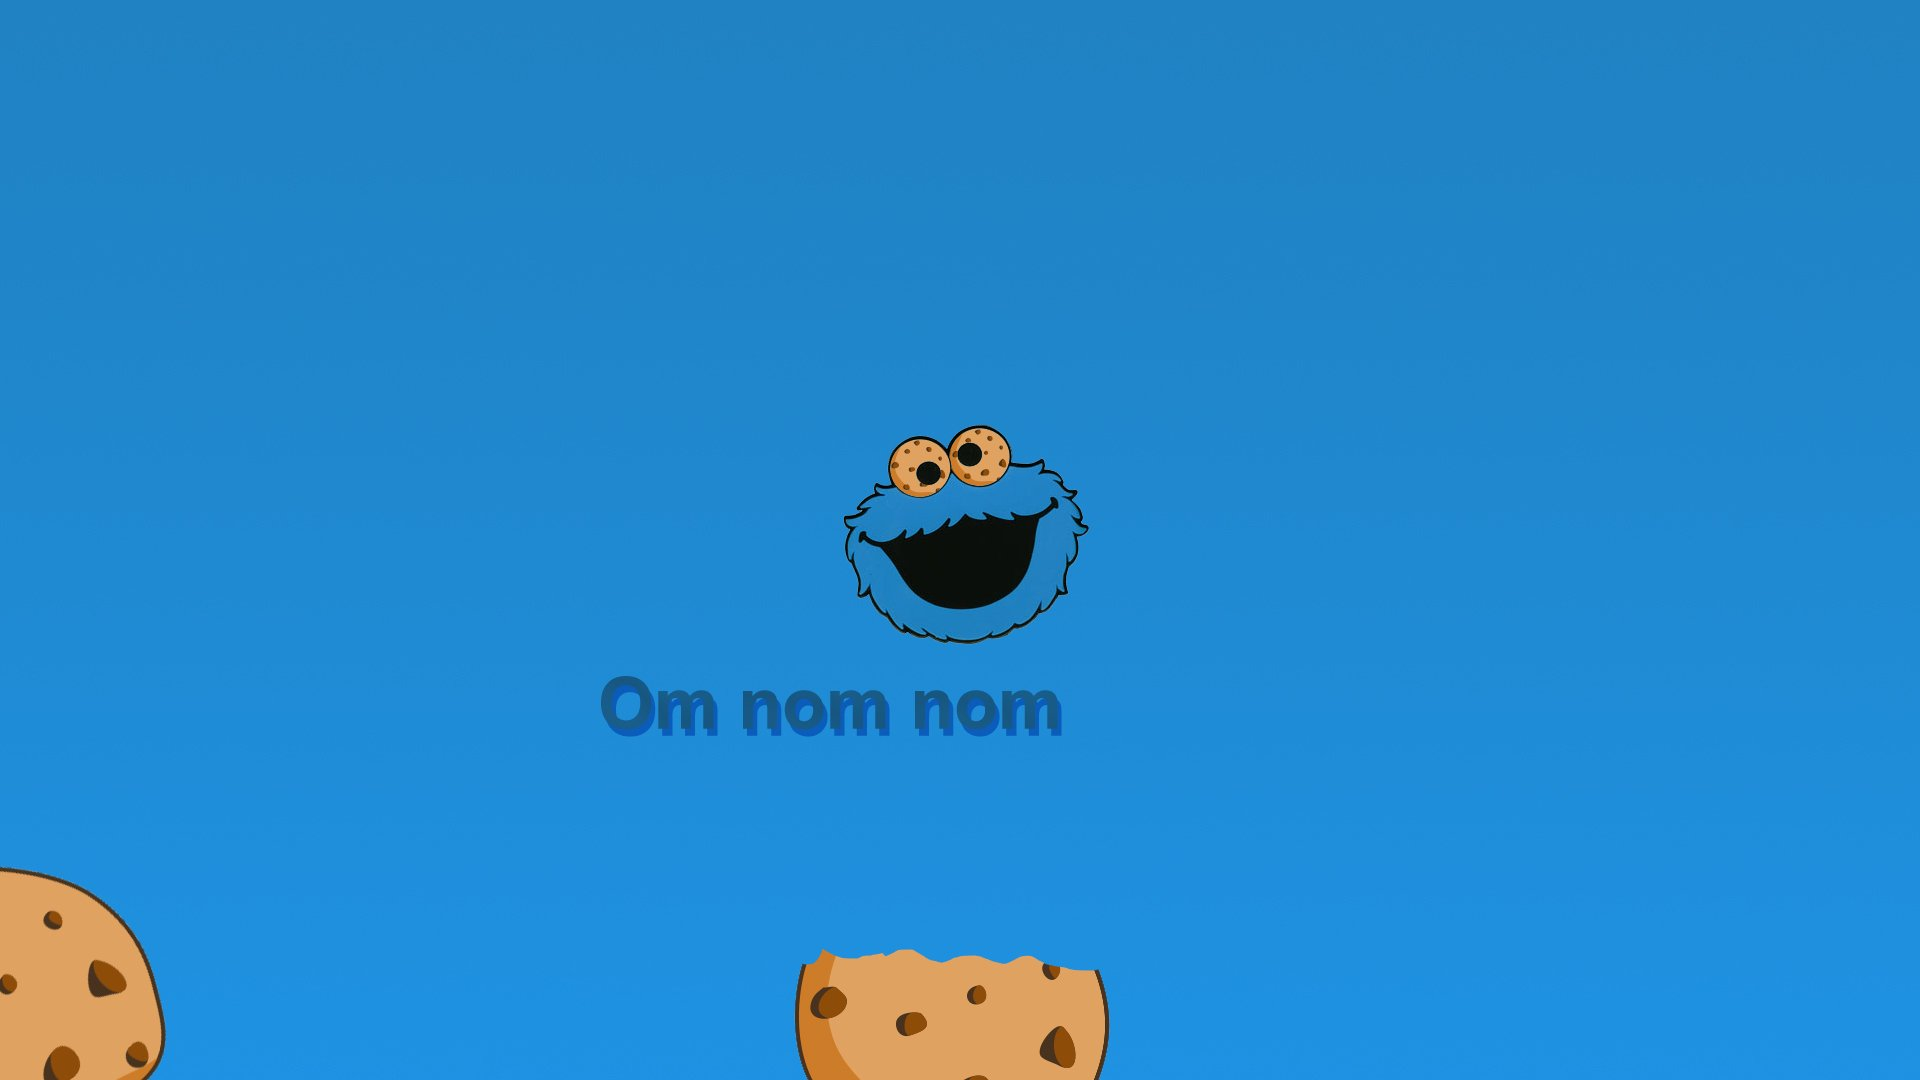 Animated Wallpaper For Laptop Windows 7 Cookiemonster Full Hd Wallpaper And Background Image